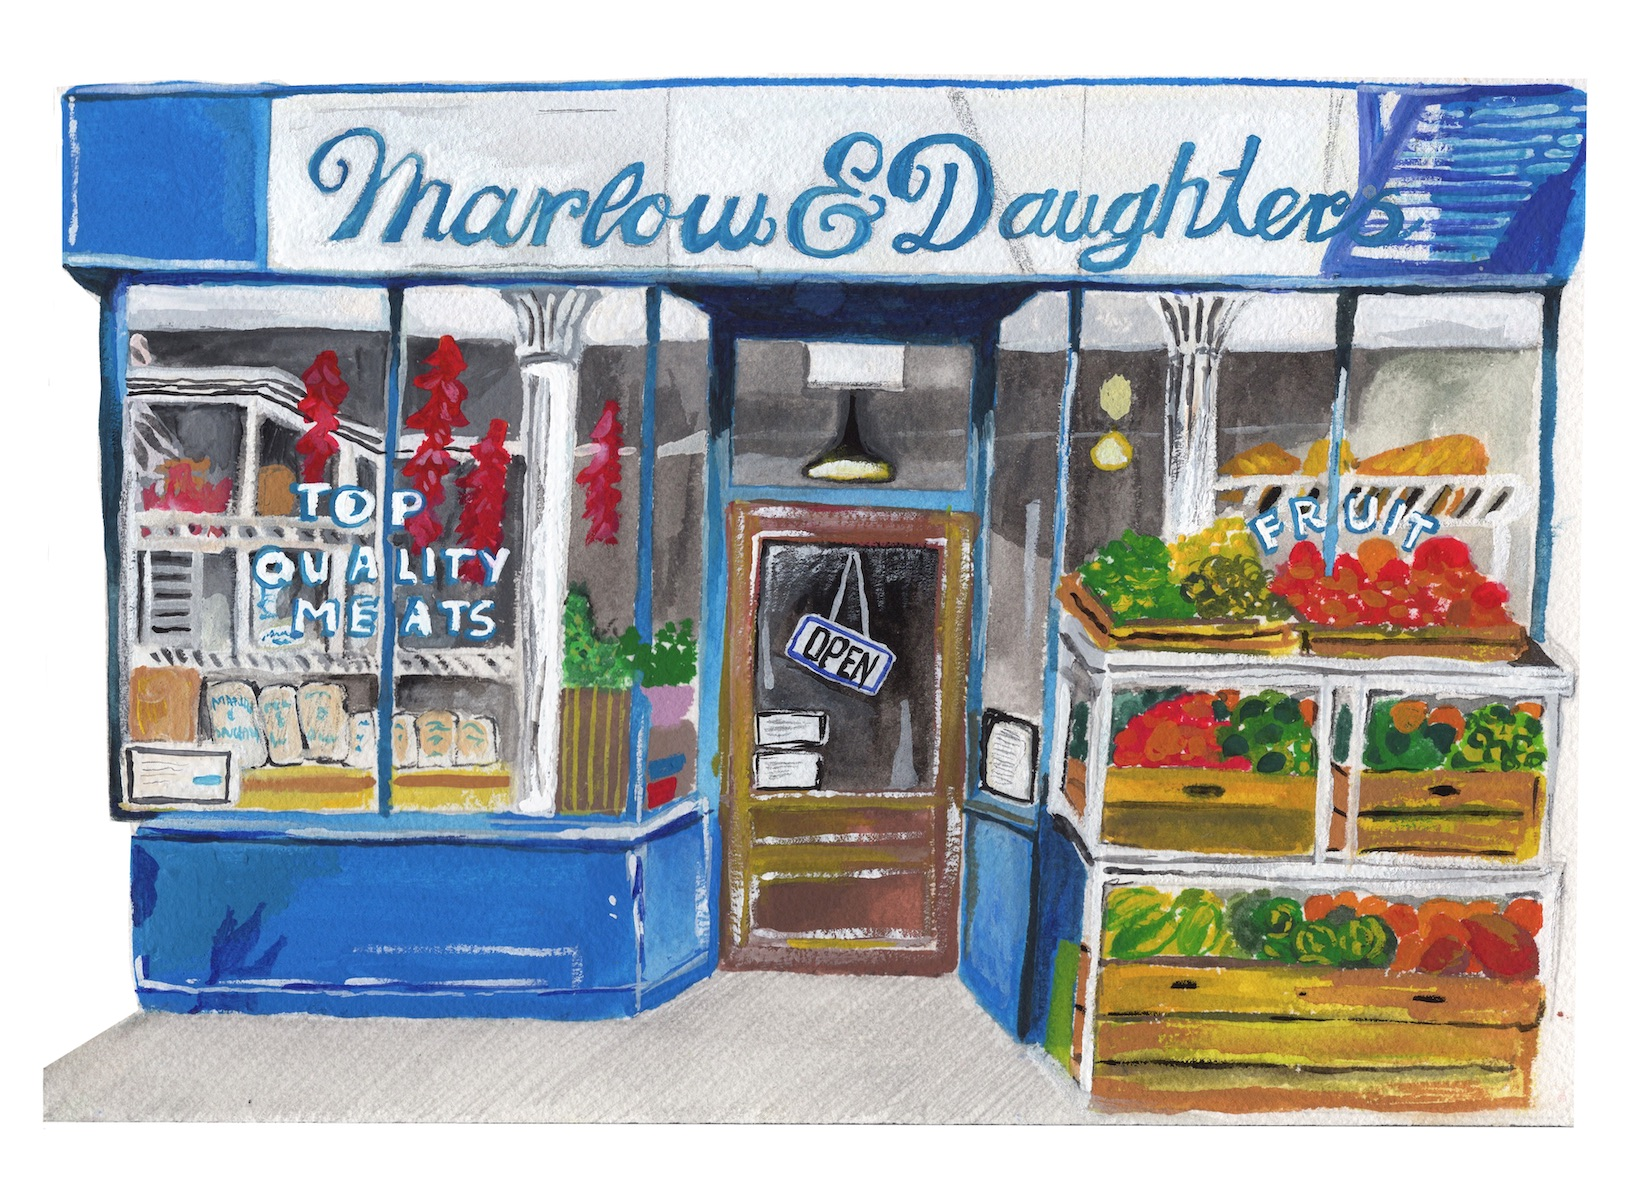 A drawn illustration of a restaurant with the name Russ and Daughters over the Door